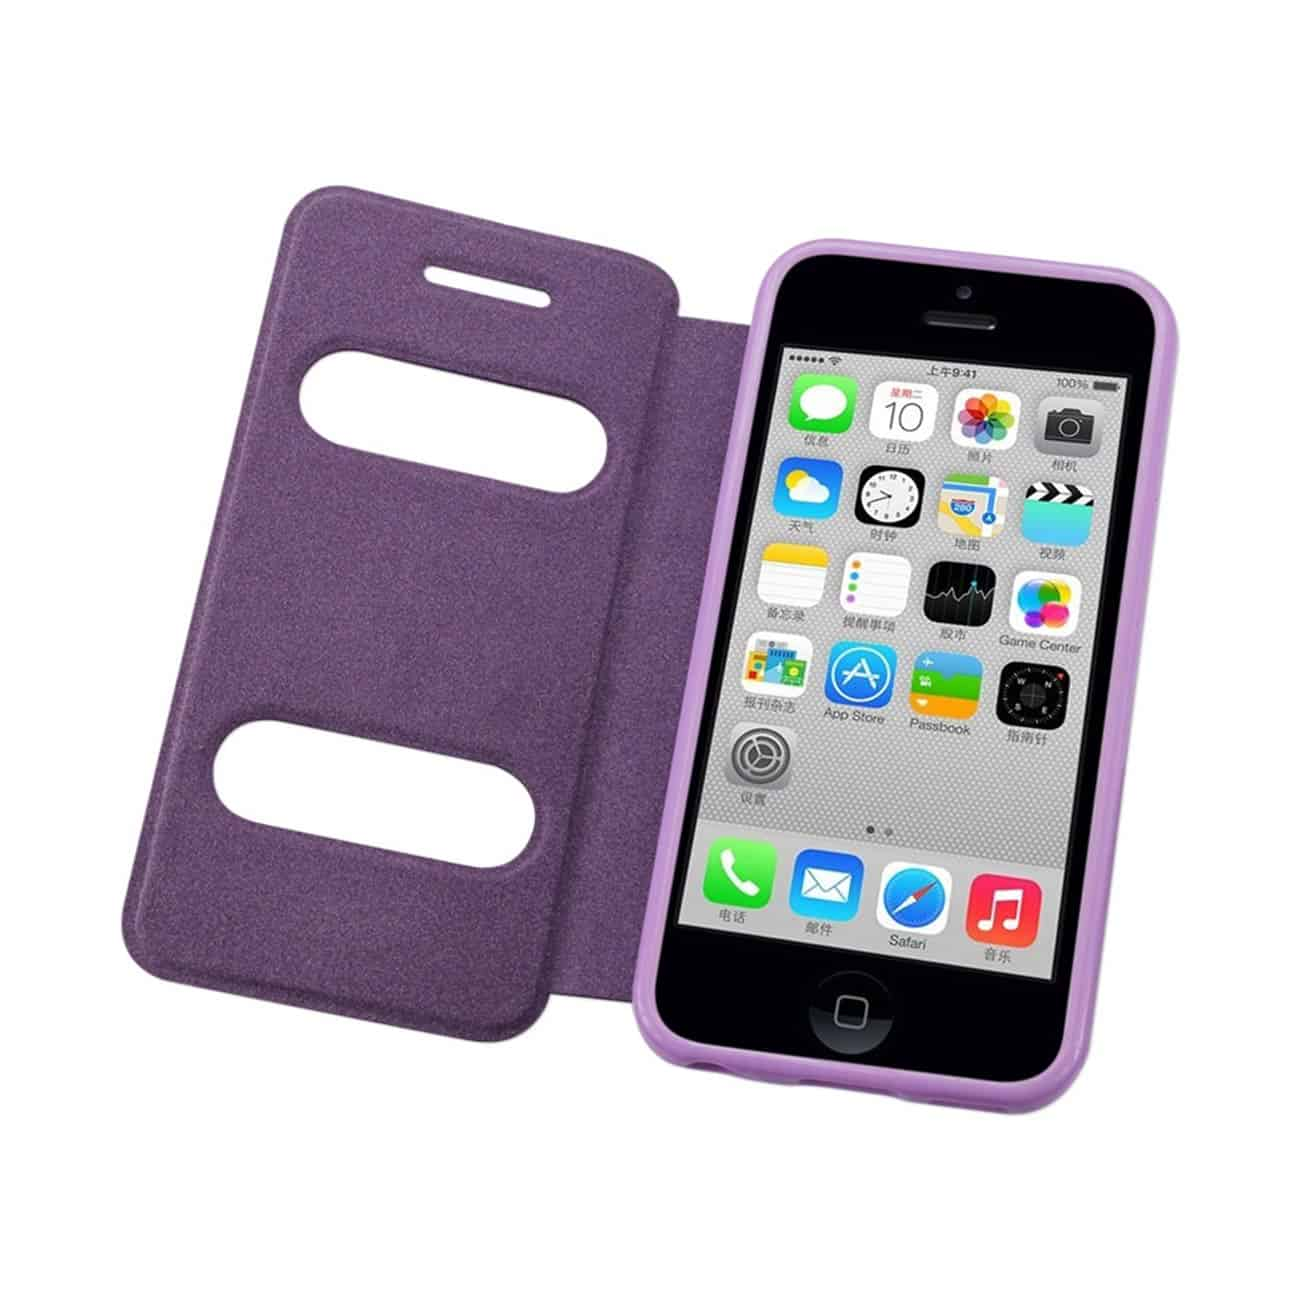 IPHONE 5C WINDOW FLIP FOLIO CASE IN PURPLE